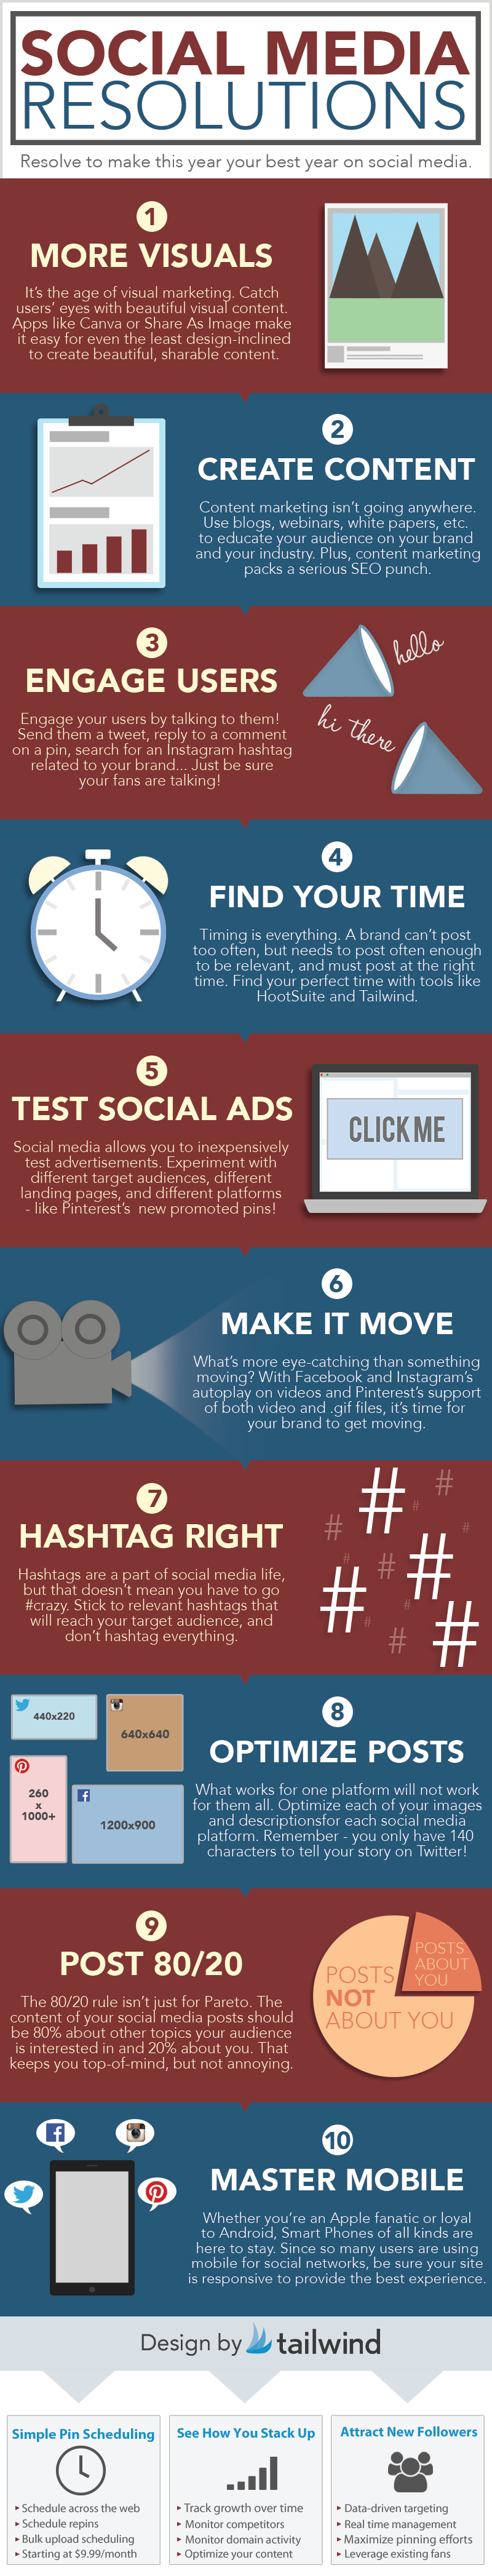 10 Interesting Facts About Social Media Resolutions